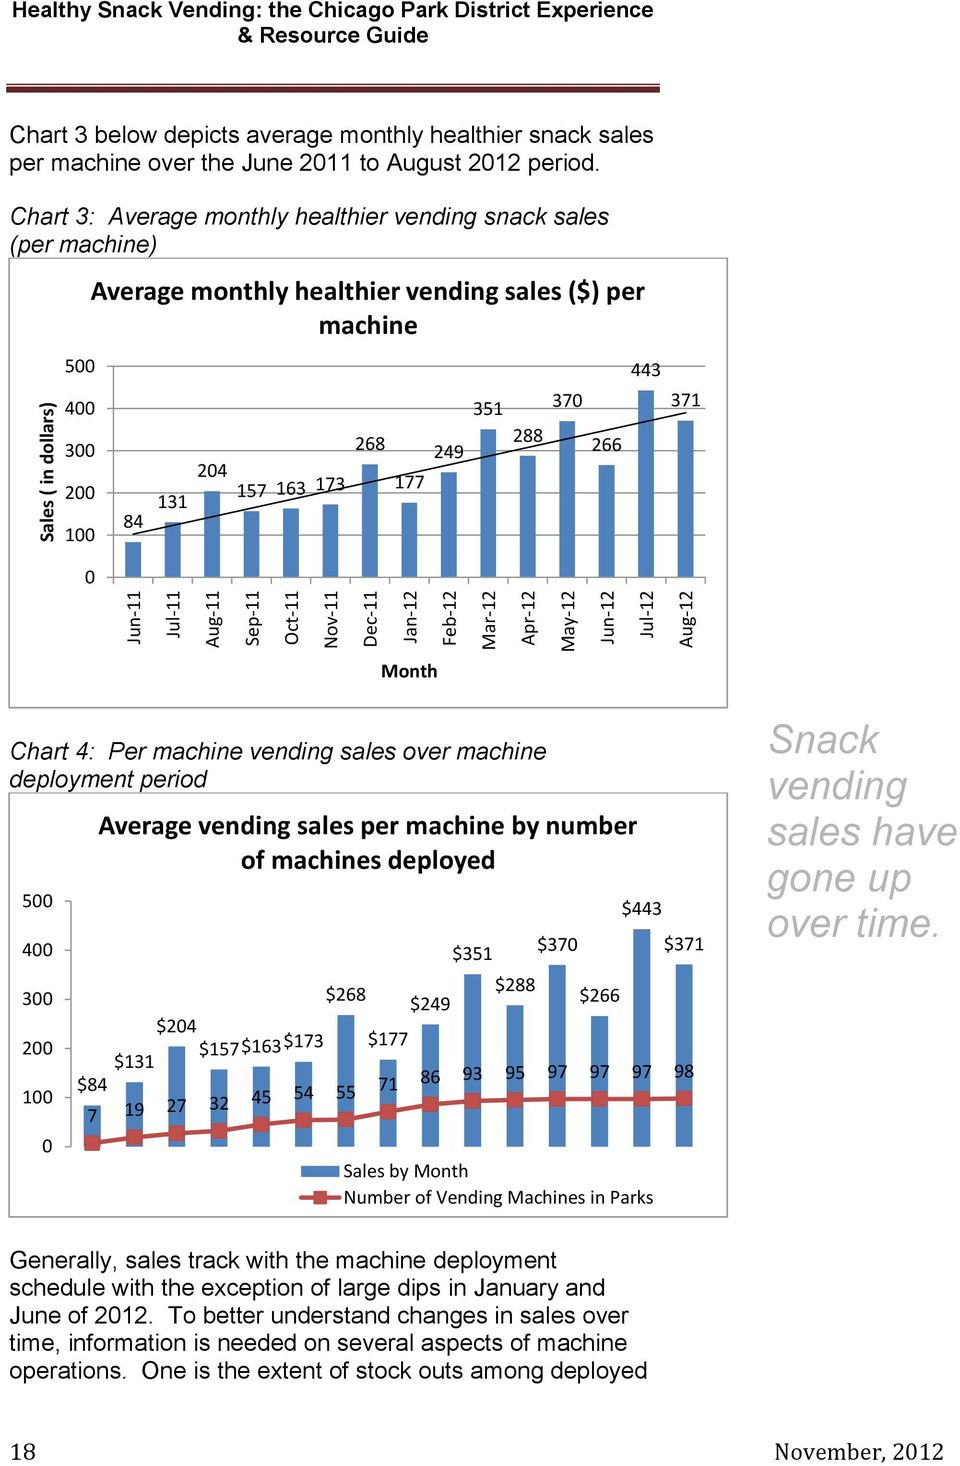 Chart 3: Average monthly healthier vending snack sales (per machine) 500 400 300 200 100 Average monthly healthier vending sales ($) per machine 84 131 204 157 163 173 268 177 249 351 288 370 266 443